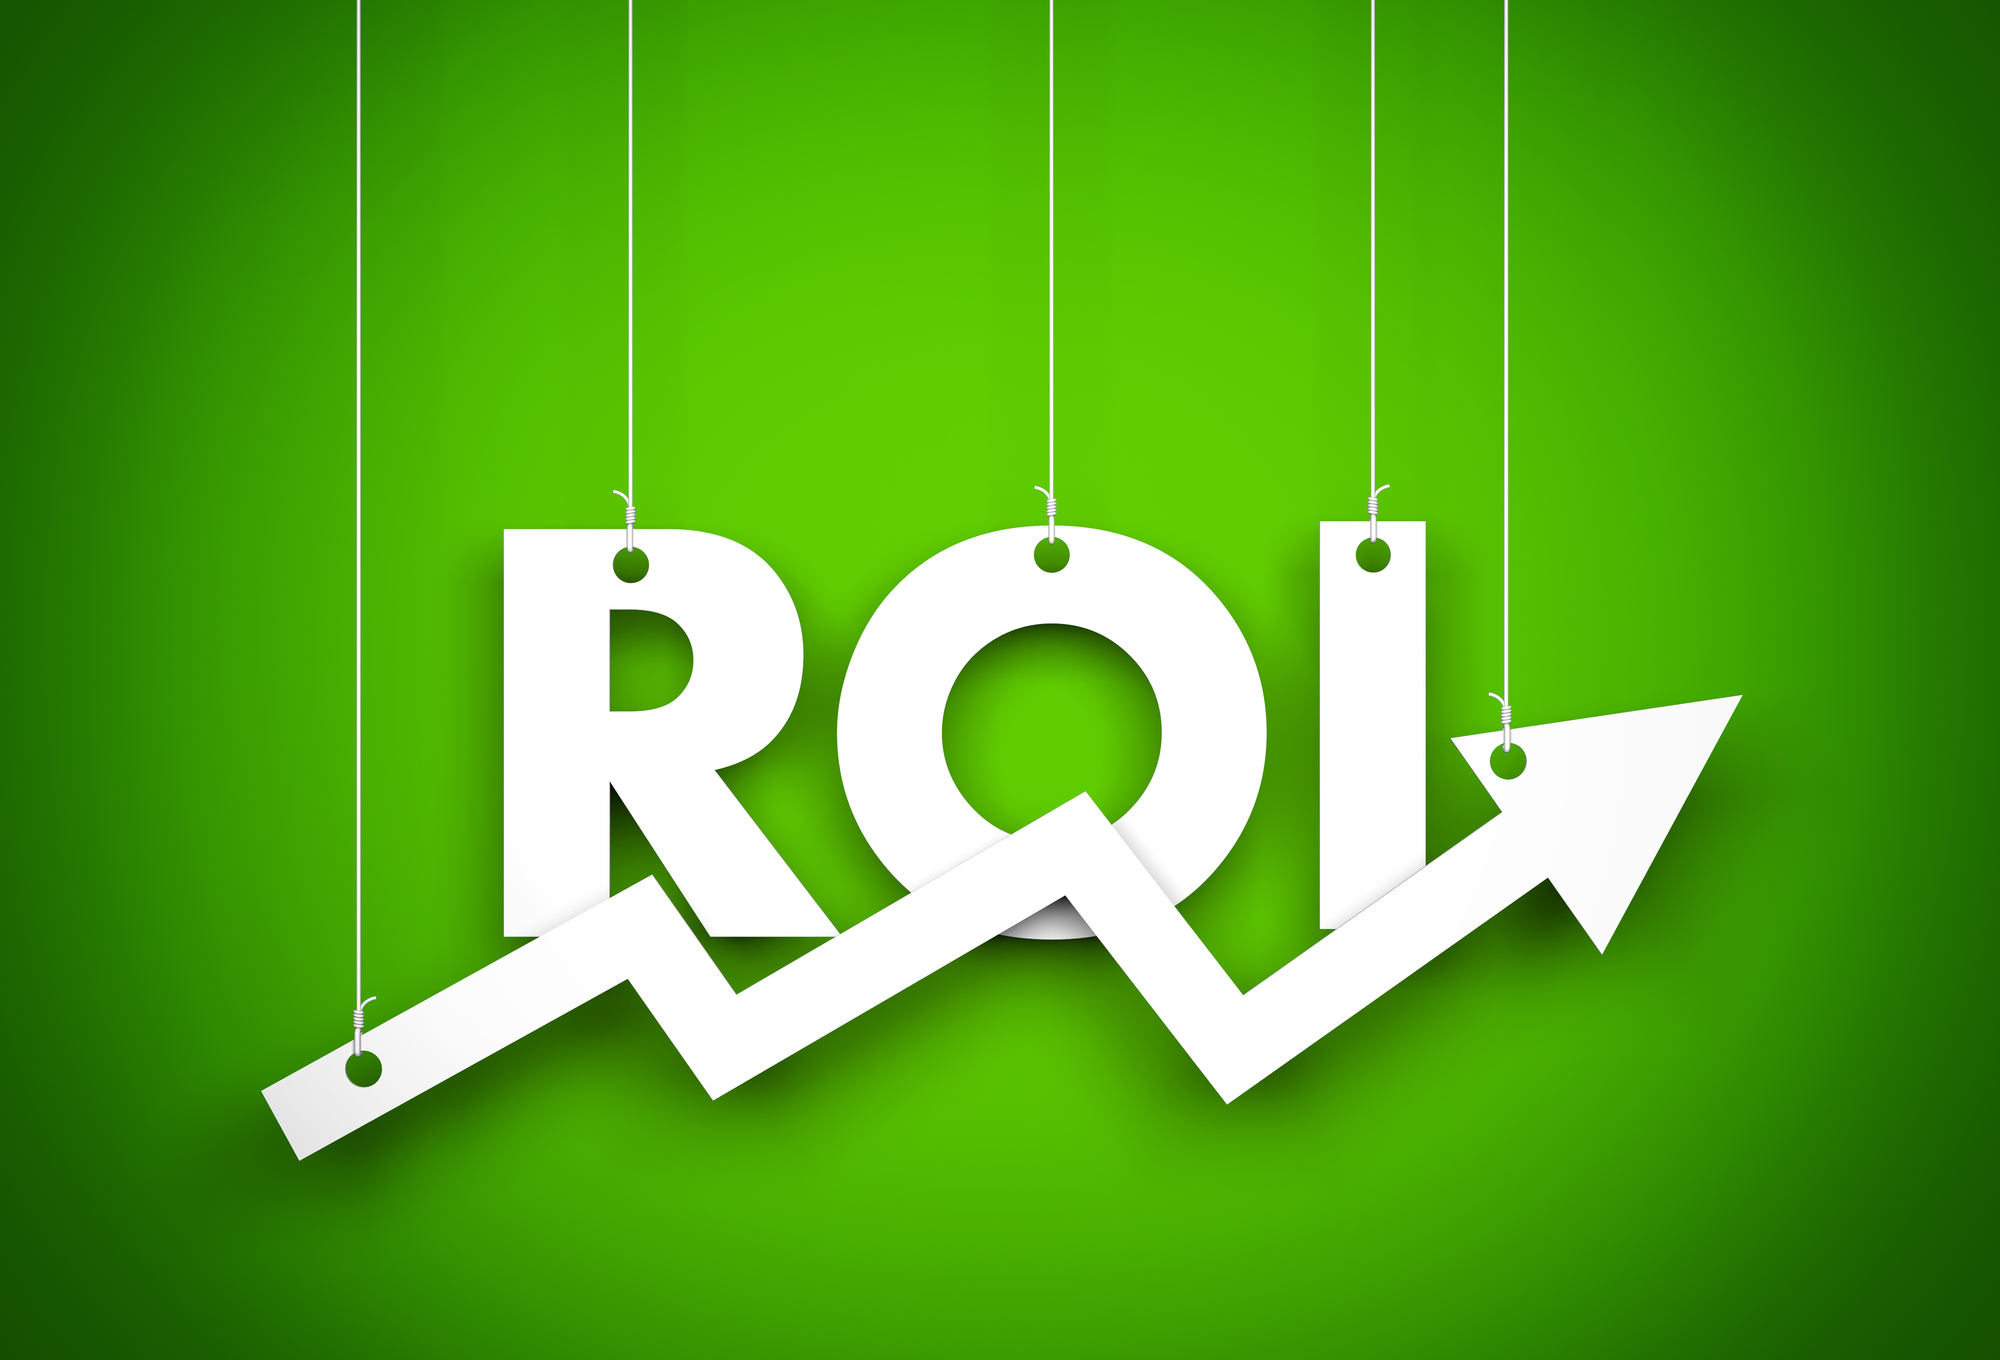 10 Ways to Increase Retention and Boost ROI: Tips for Salt Lake City Rental Owners